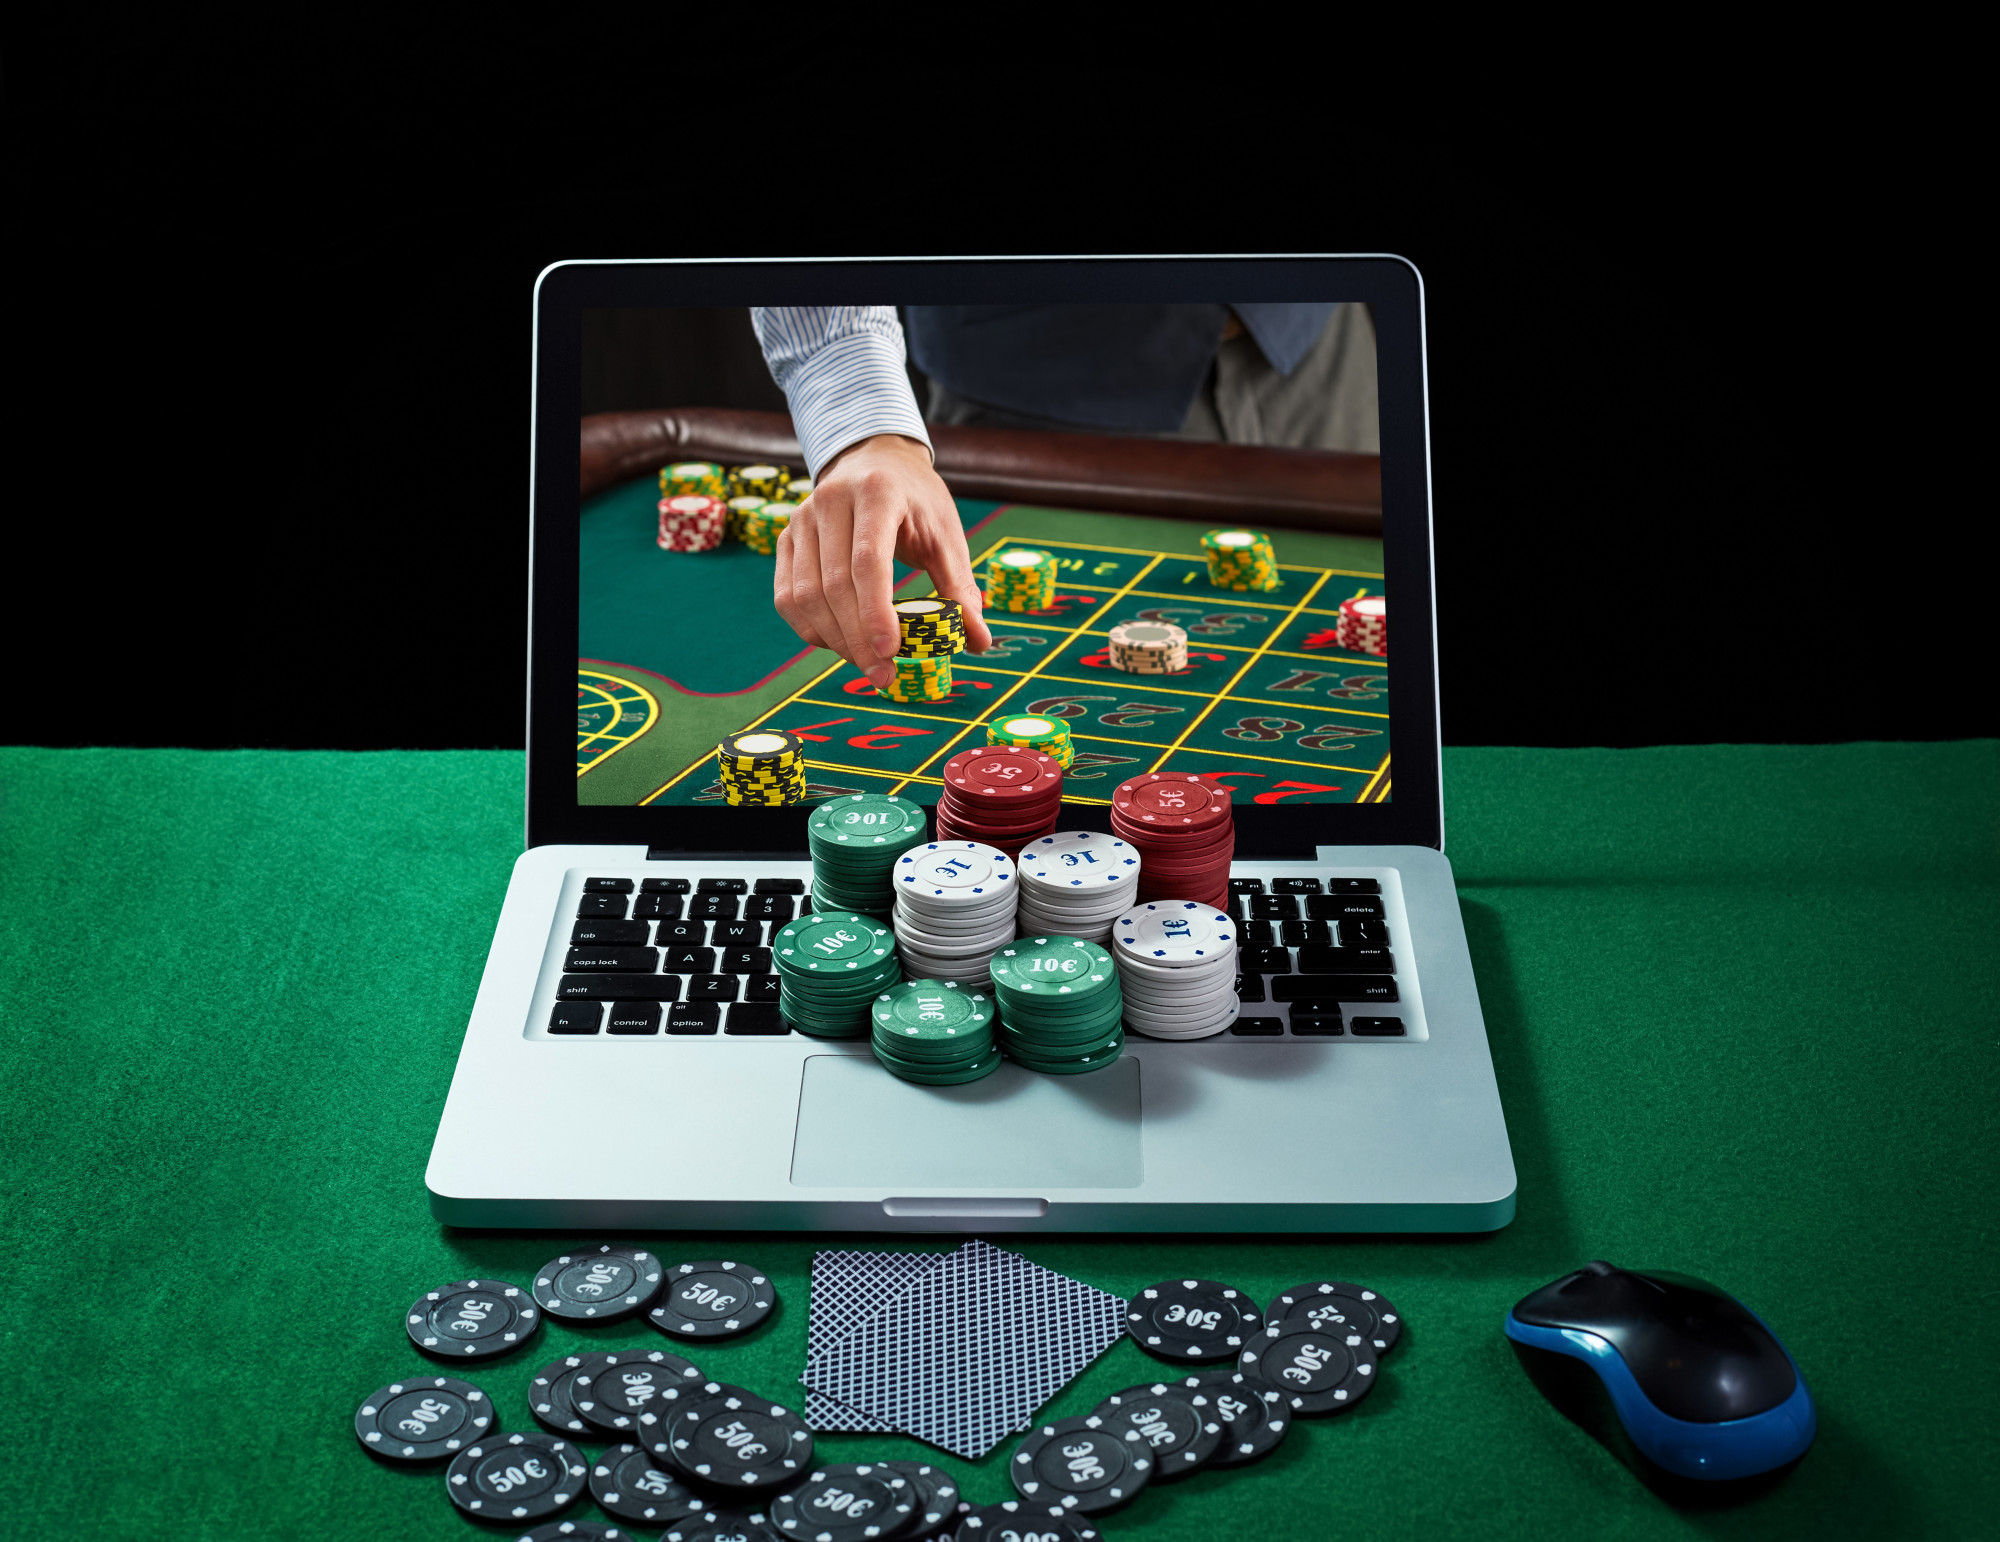 online gambling with casino chips and cards on laptop